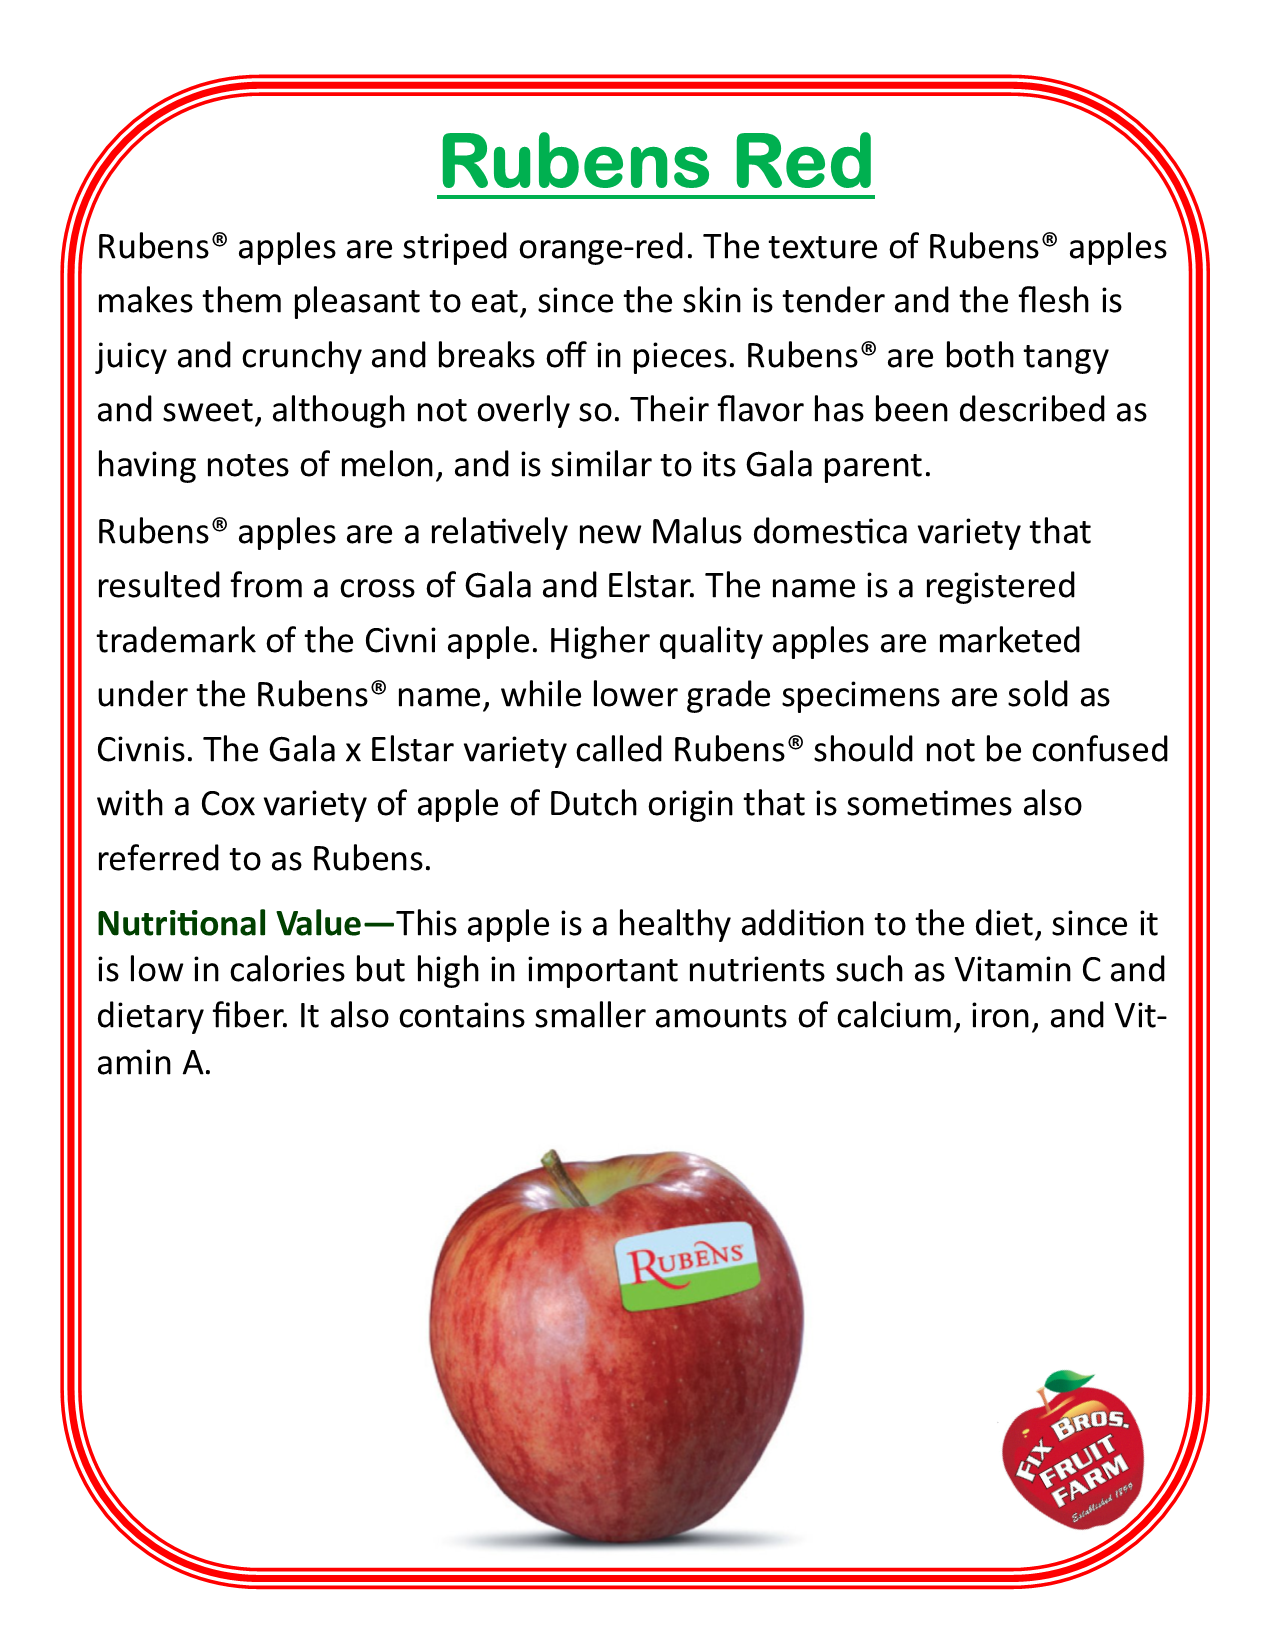 Rubens Red description of the apple grown at Fix Bros Fruit Farm, Hudson, New York